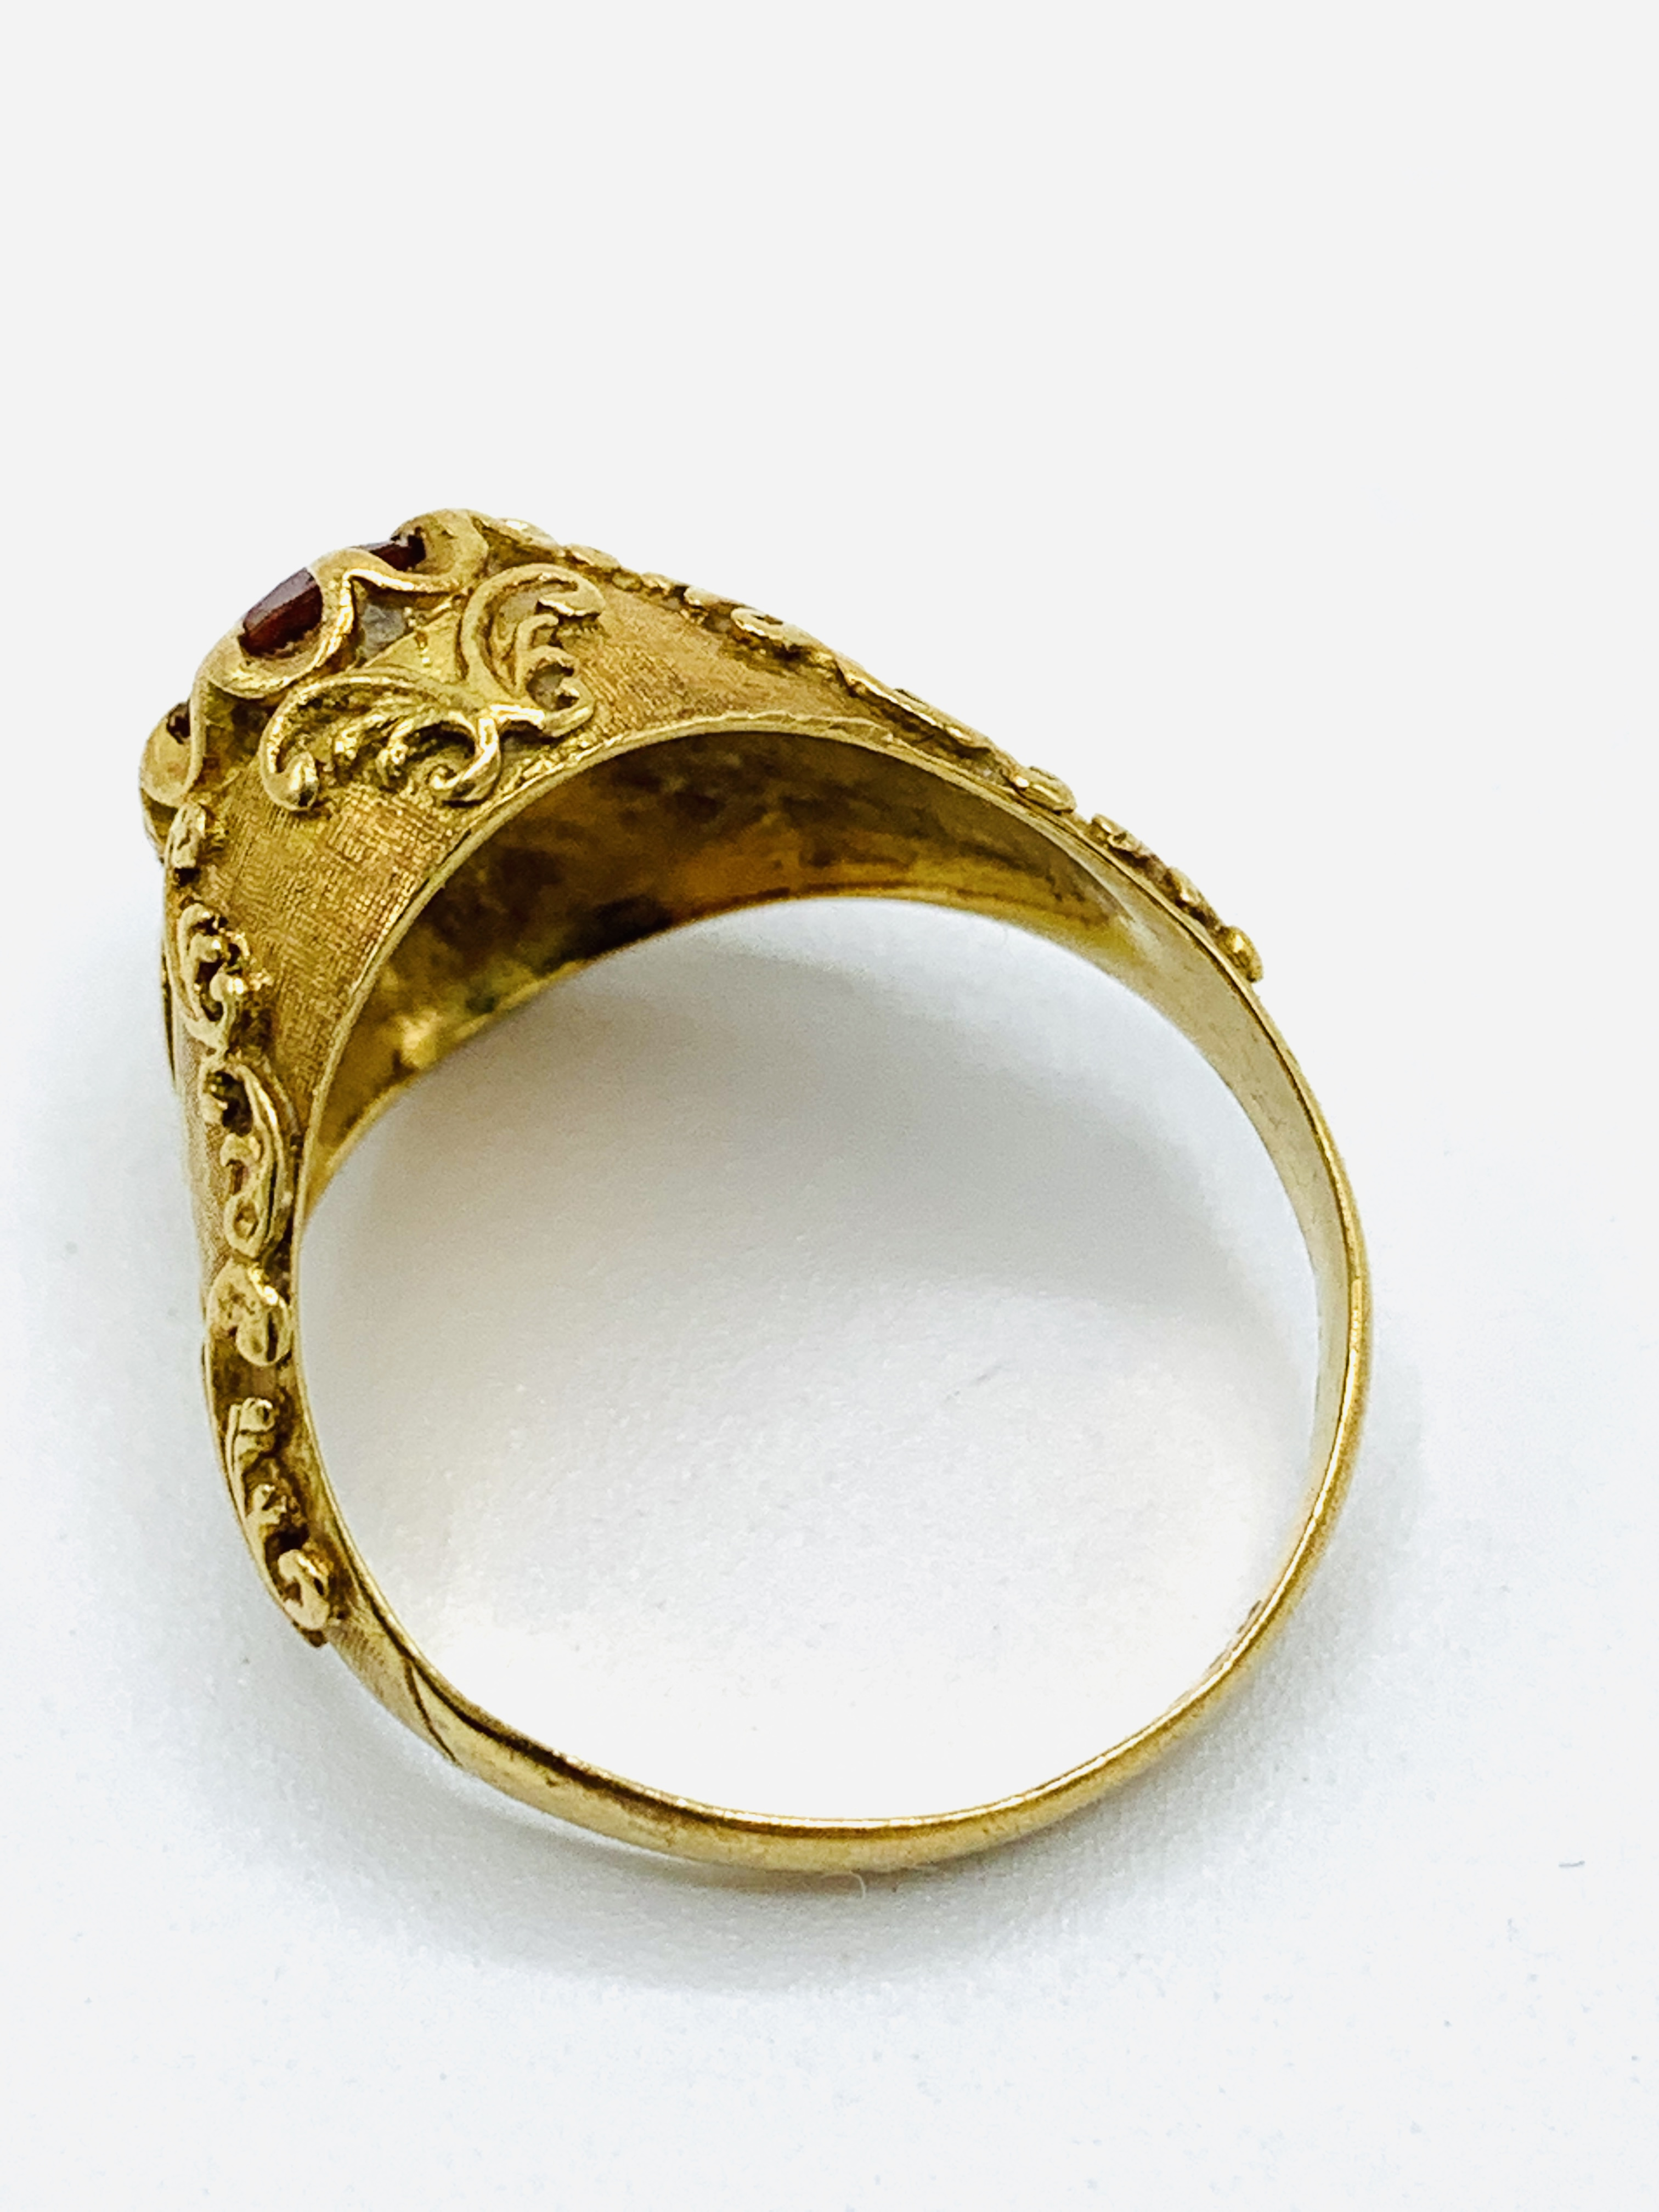 18ct gold and citrine ring and a yellow metal and yellow stone ring - Image 8 of 8